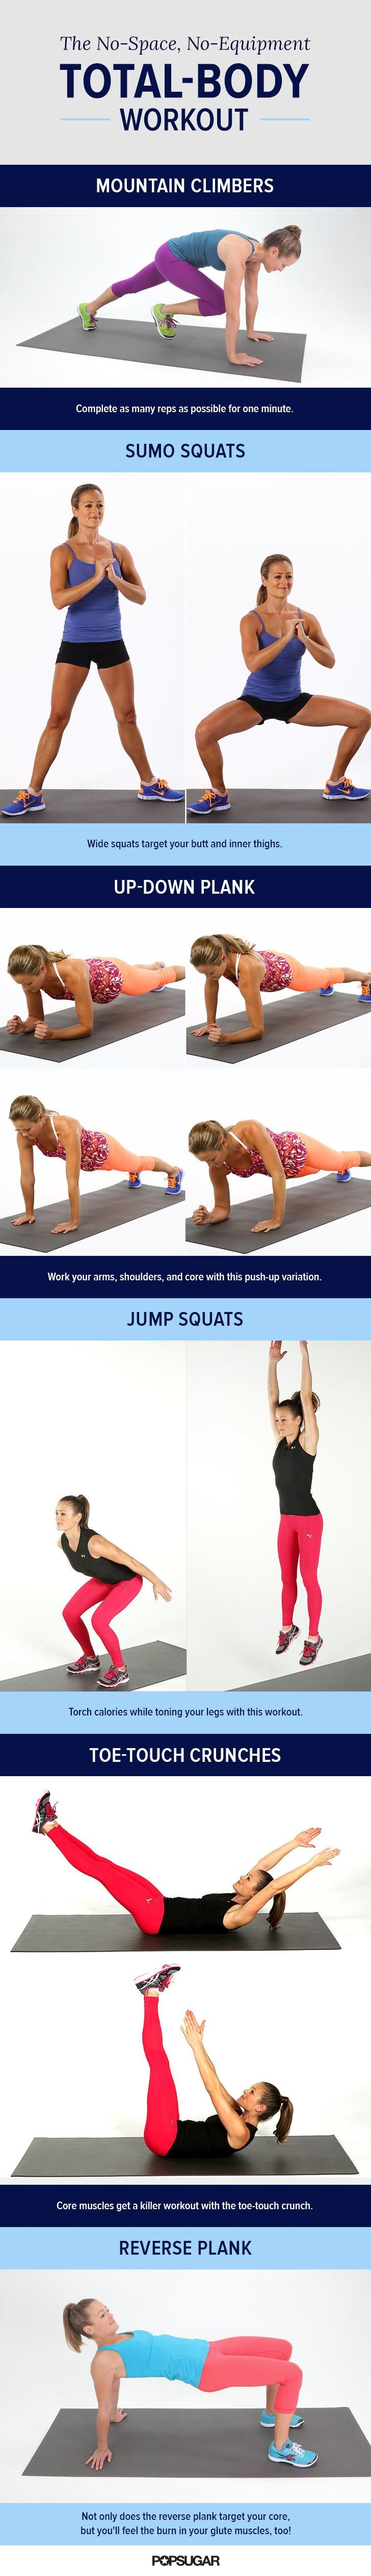 This no-equipment, no-excuses workout will tone from head to toe. It's just 20 minutes. Print it to do at home, on vacation, or at the gym.